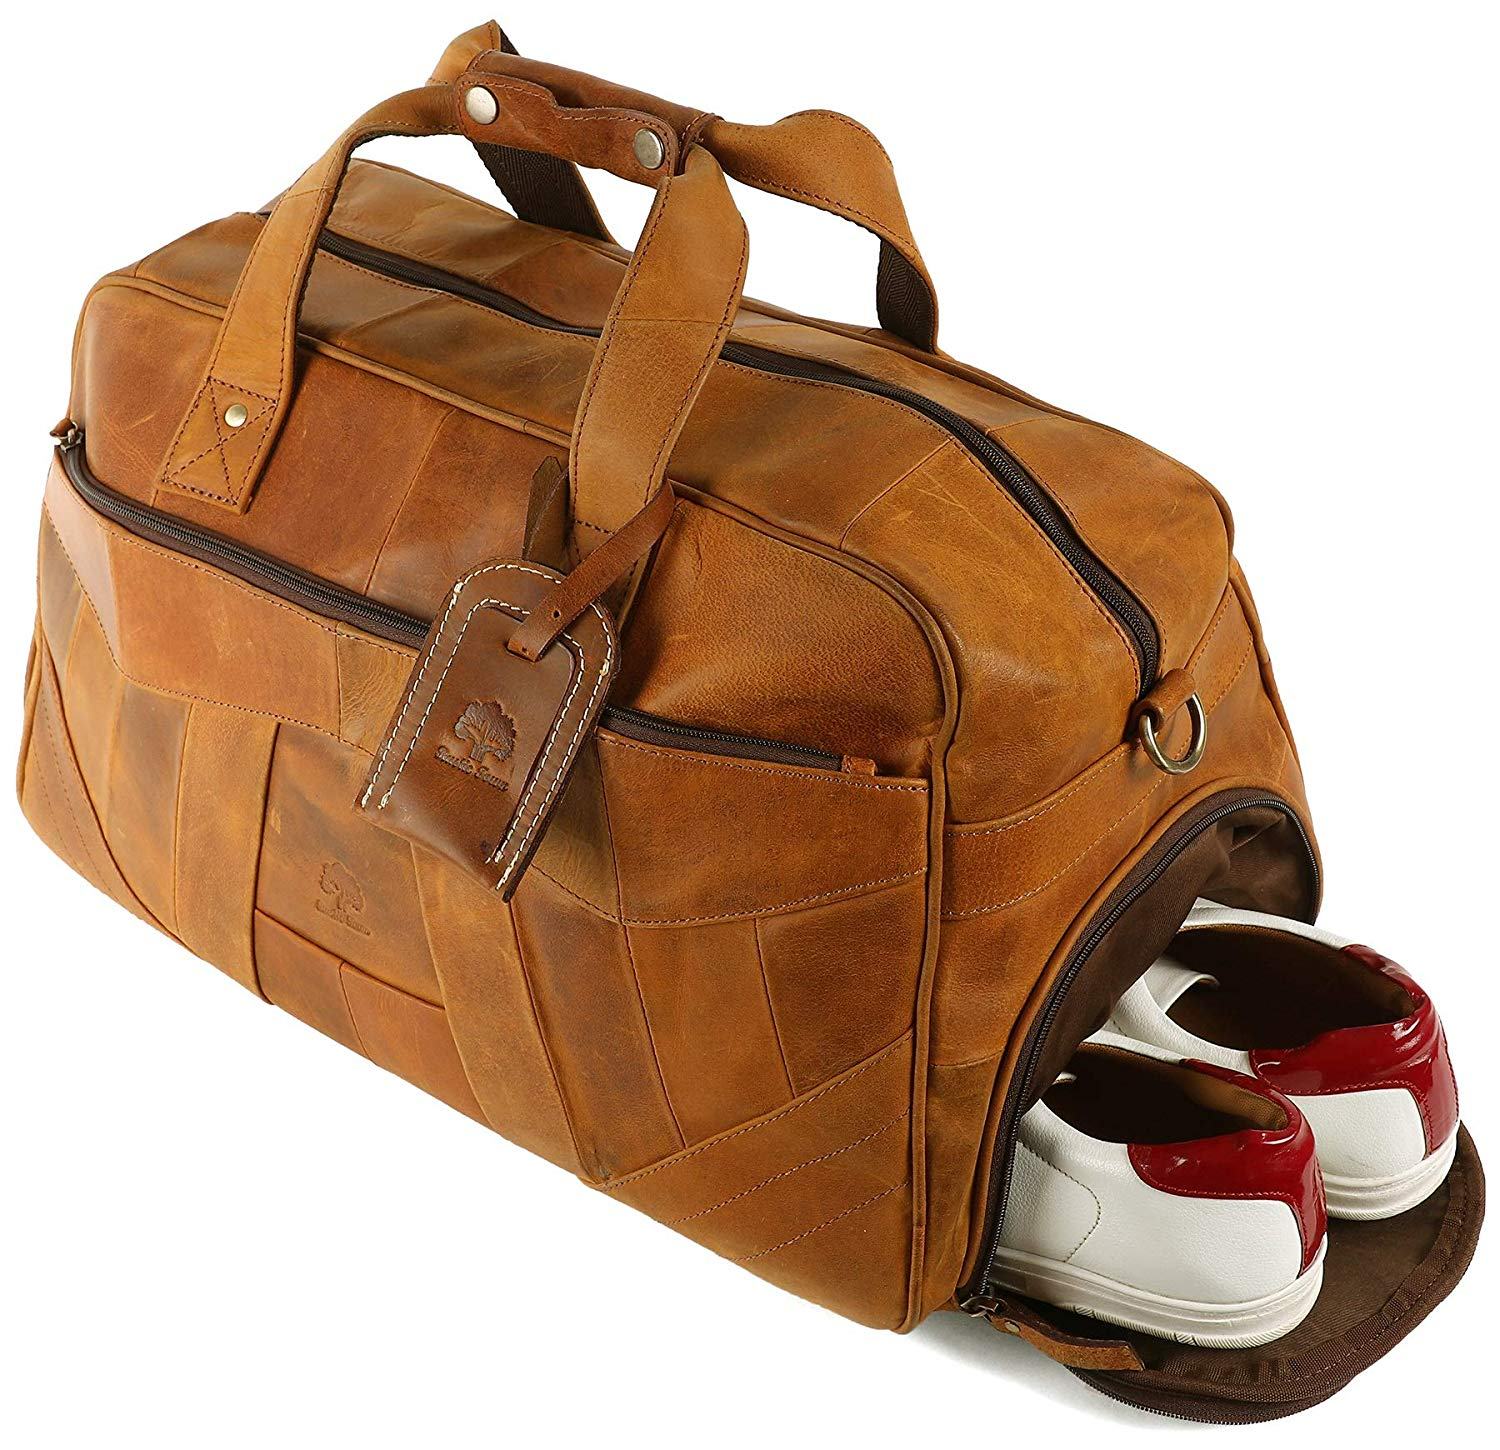 Rustic Genuine Leather Duffel Carry-On Luggage for Men